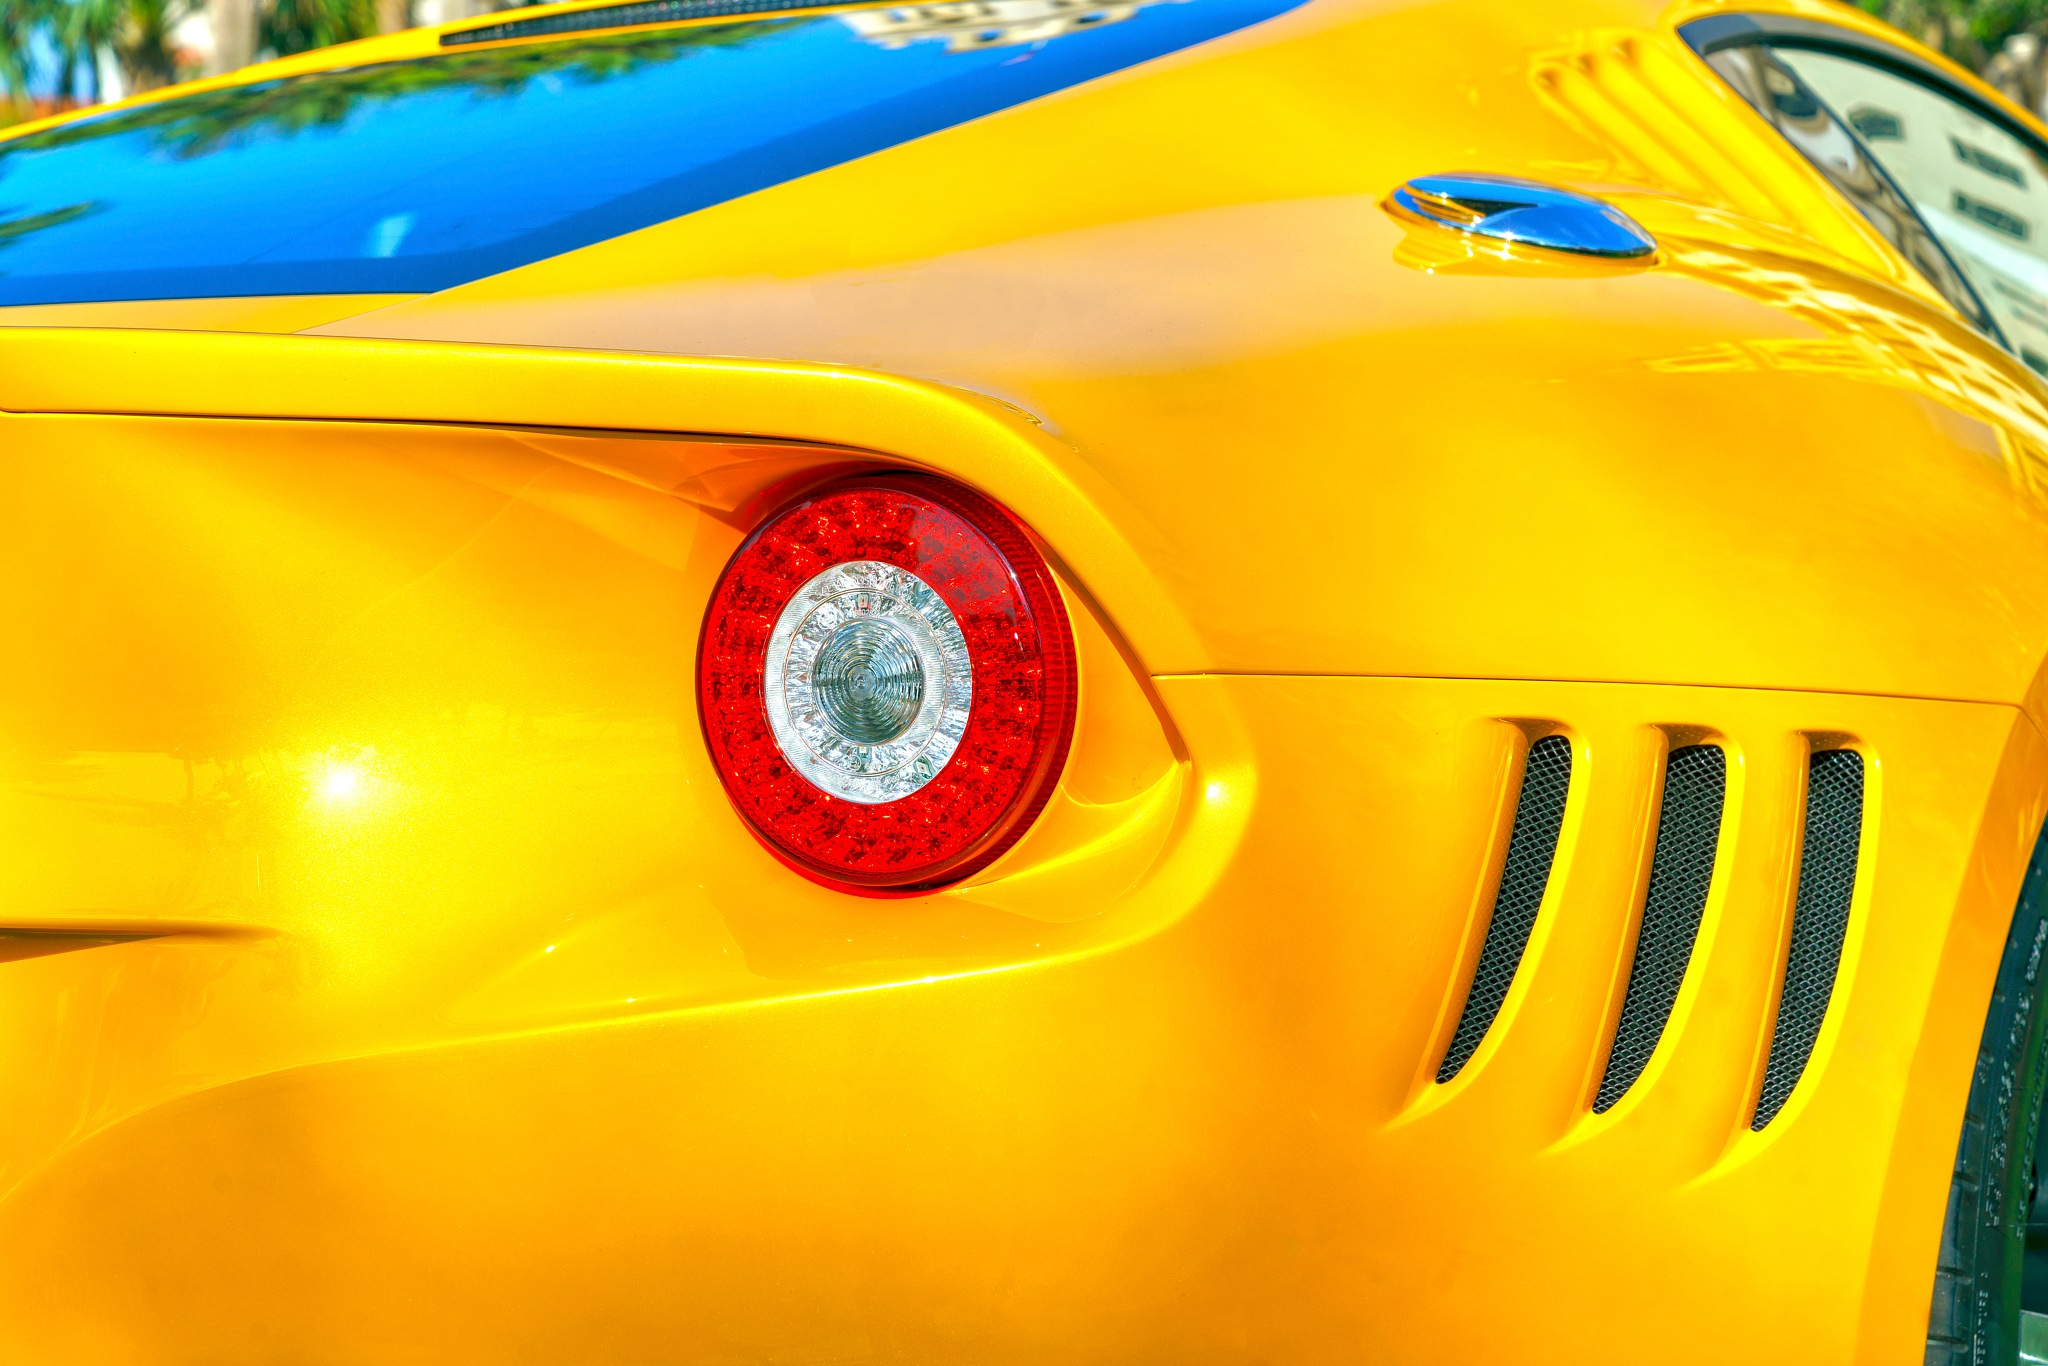 Ferrari SP275 RW Competizione - one off by Terry R. Stahly